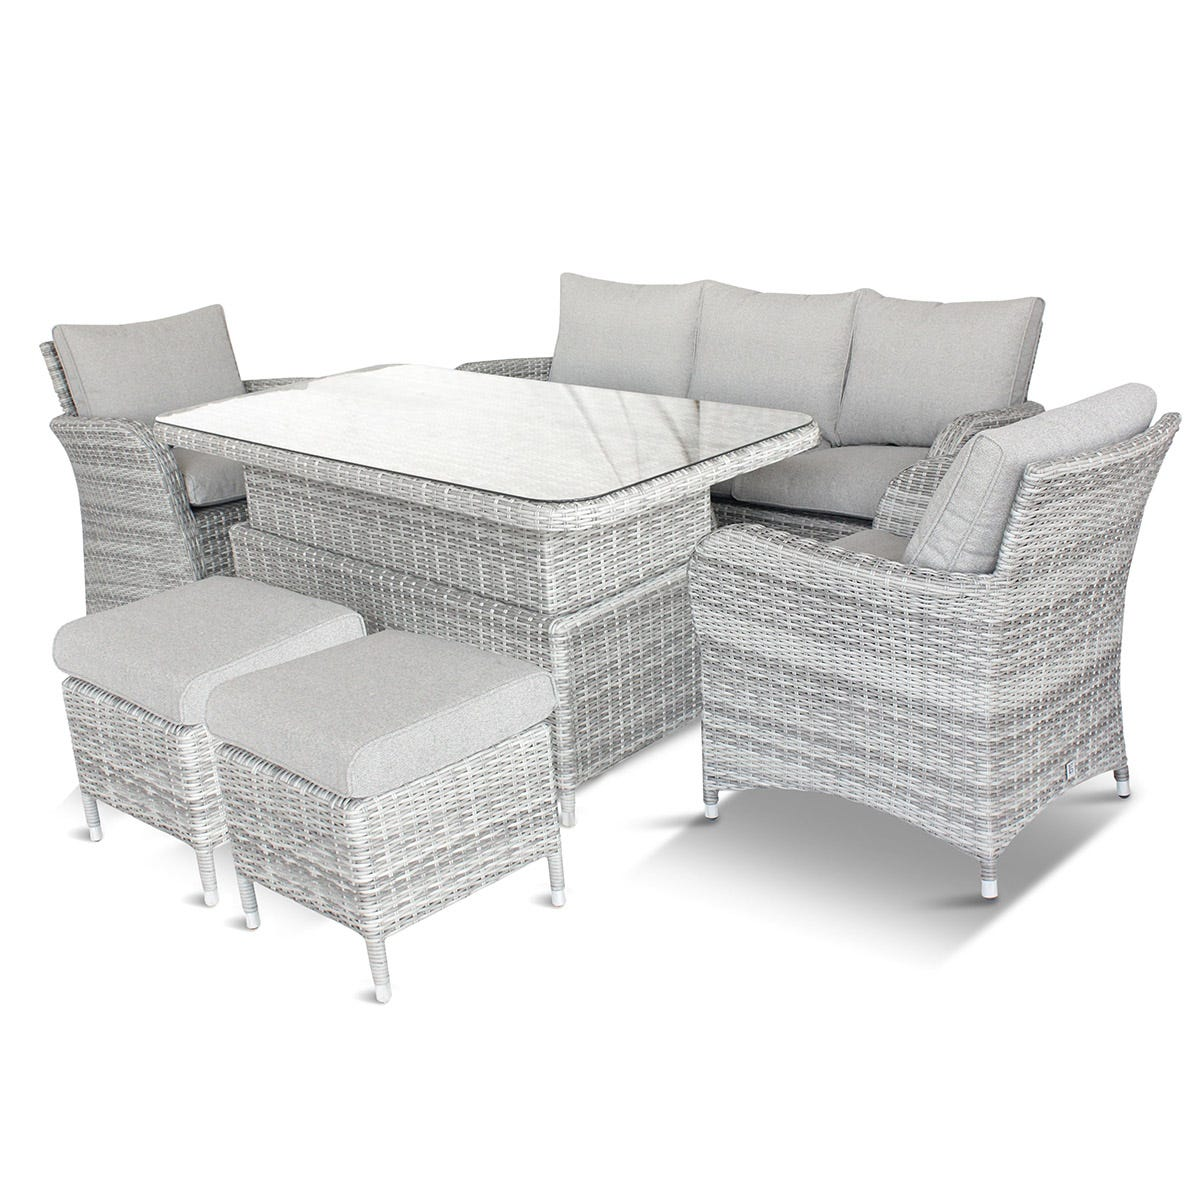 LG Outdoor Monaco Stone Lounge Dining Set with Adjustable Table